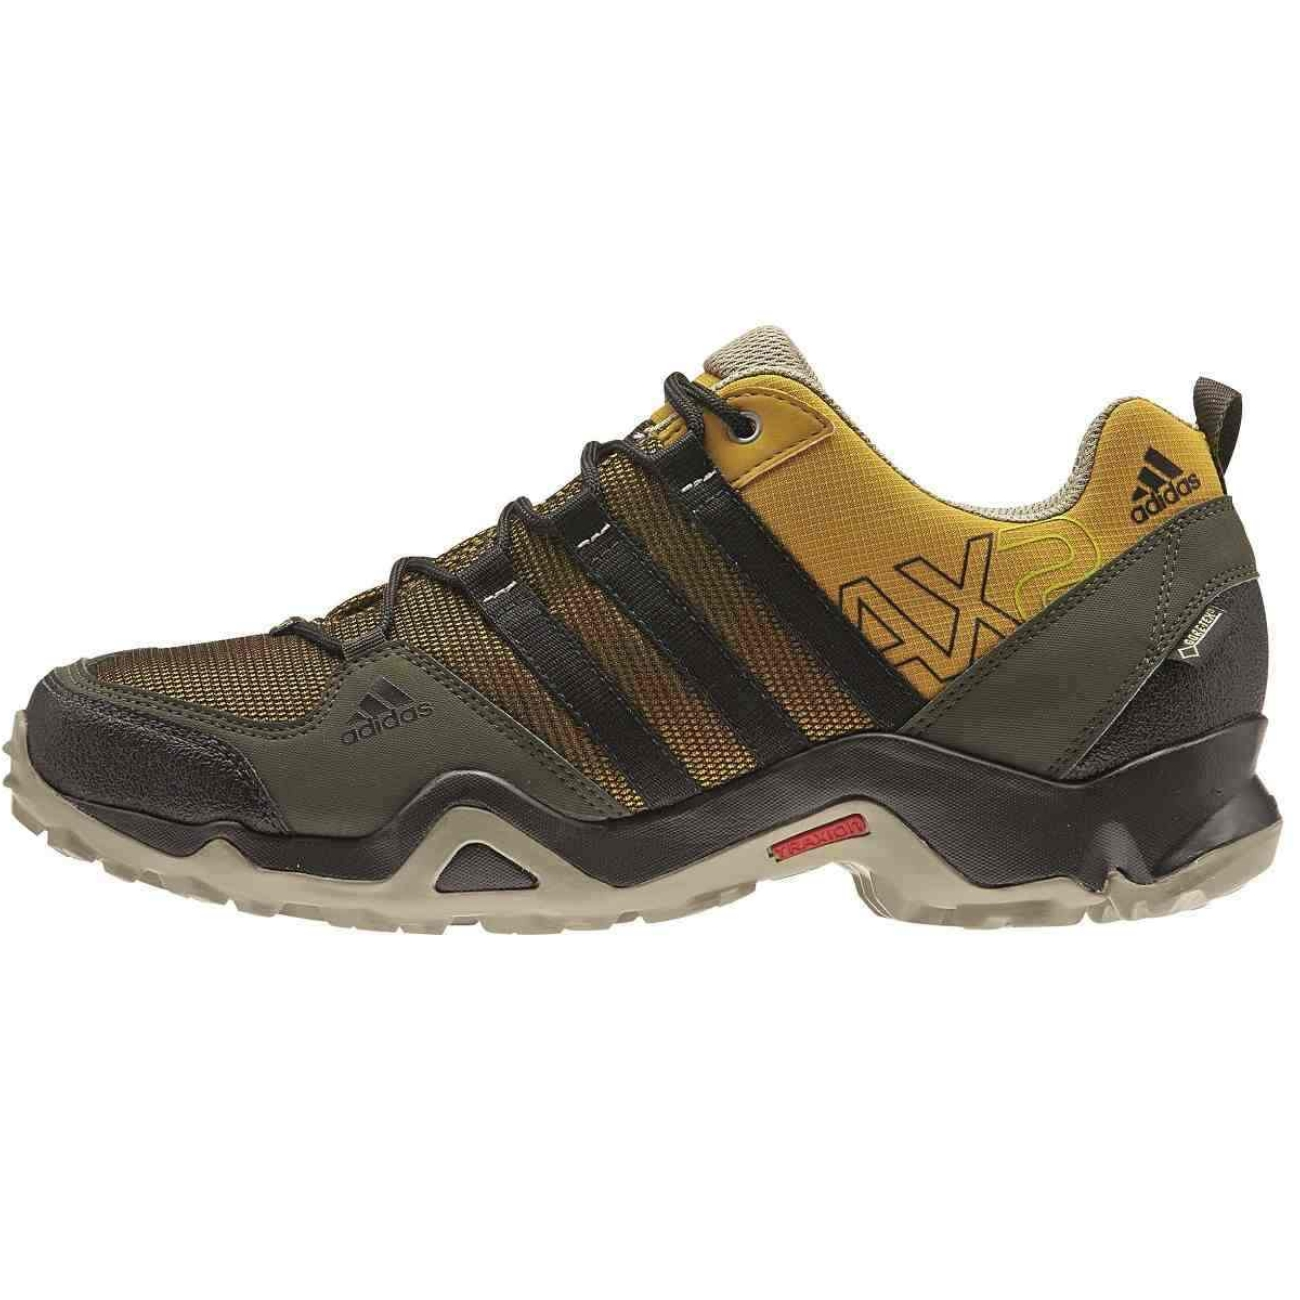 adidas ax2 gtx gore tex shoes hiking shoes trekking shoes. Black Bedroom Furniture Sets. Home Design Ideas